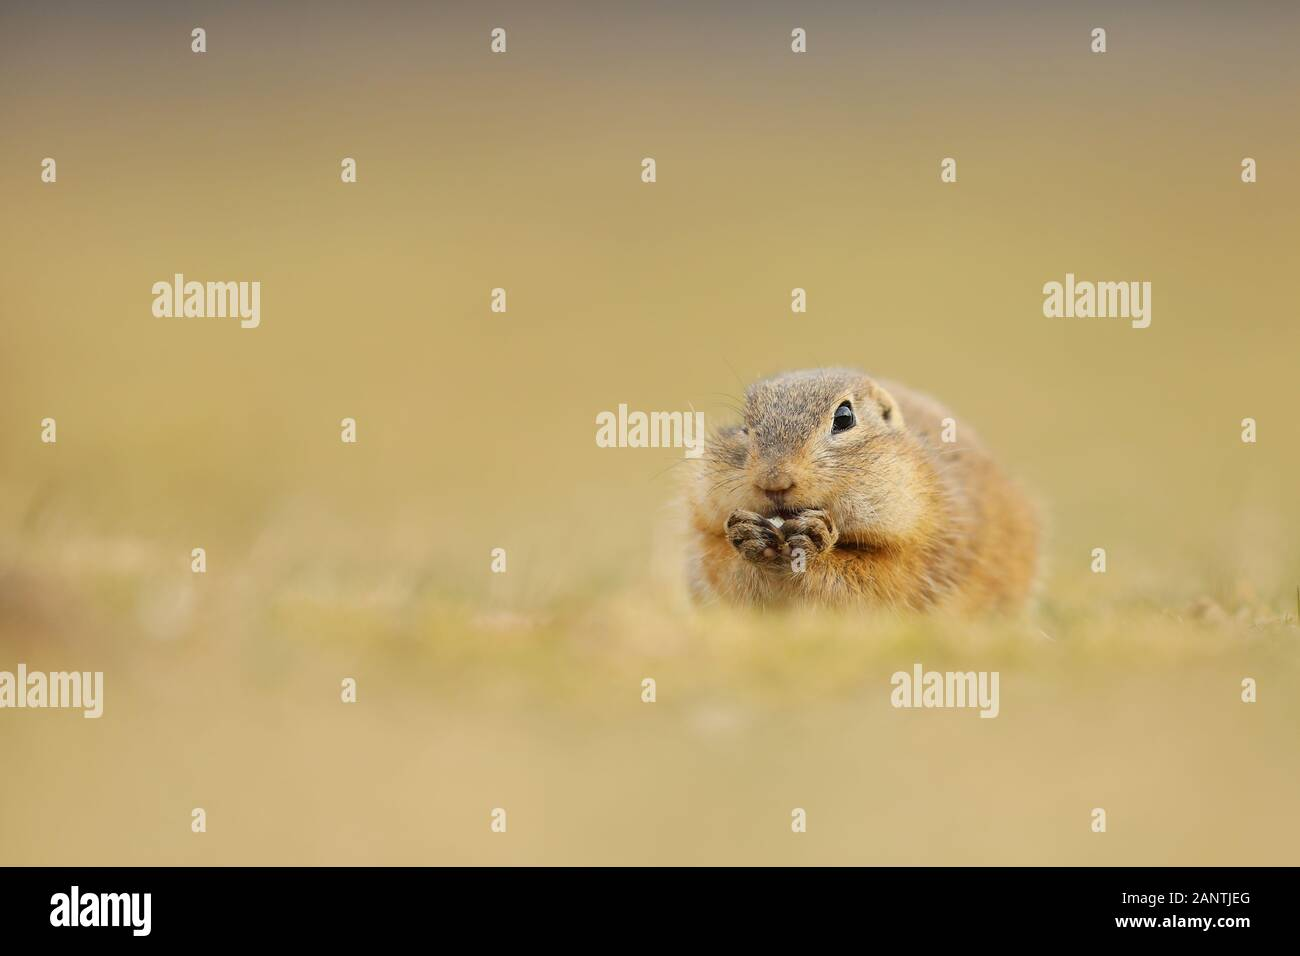 European Ground Squirrel, Spermophilus citellus, eating in the meadow during summer, detail animal portrait, Czech Republic. Stock Photo